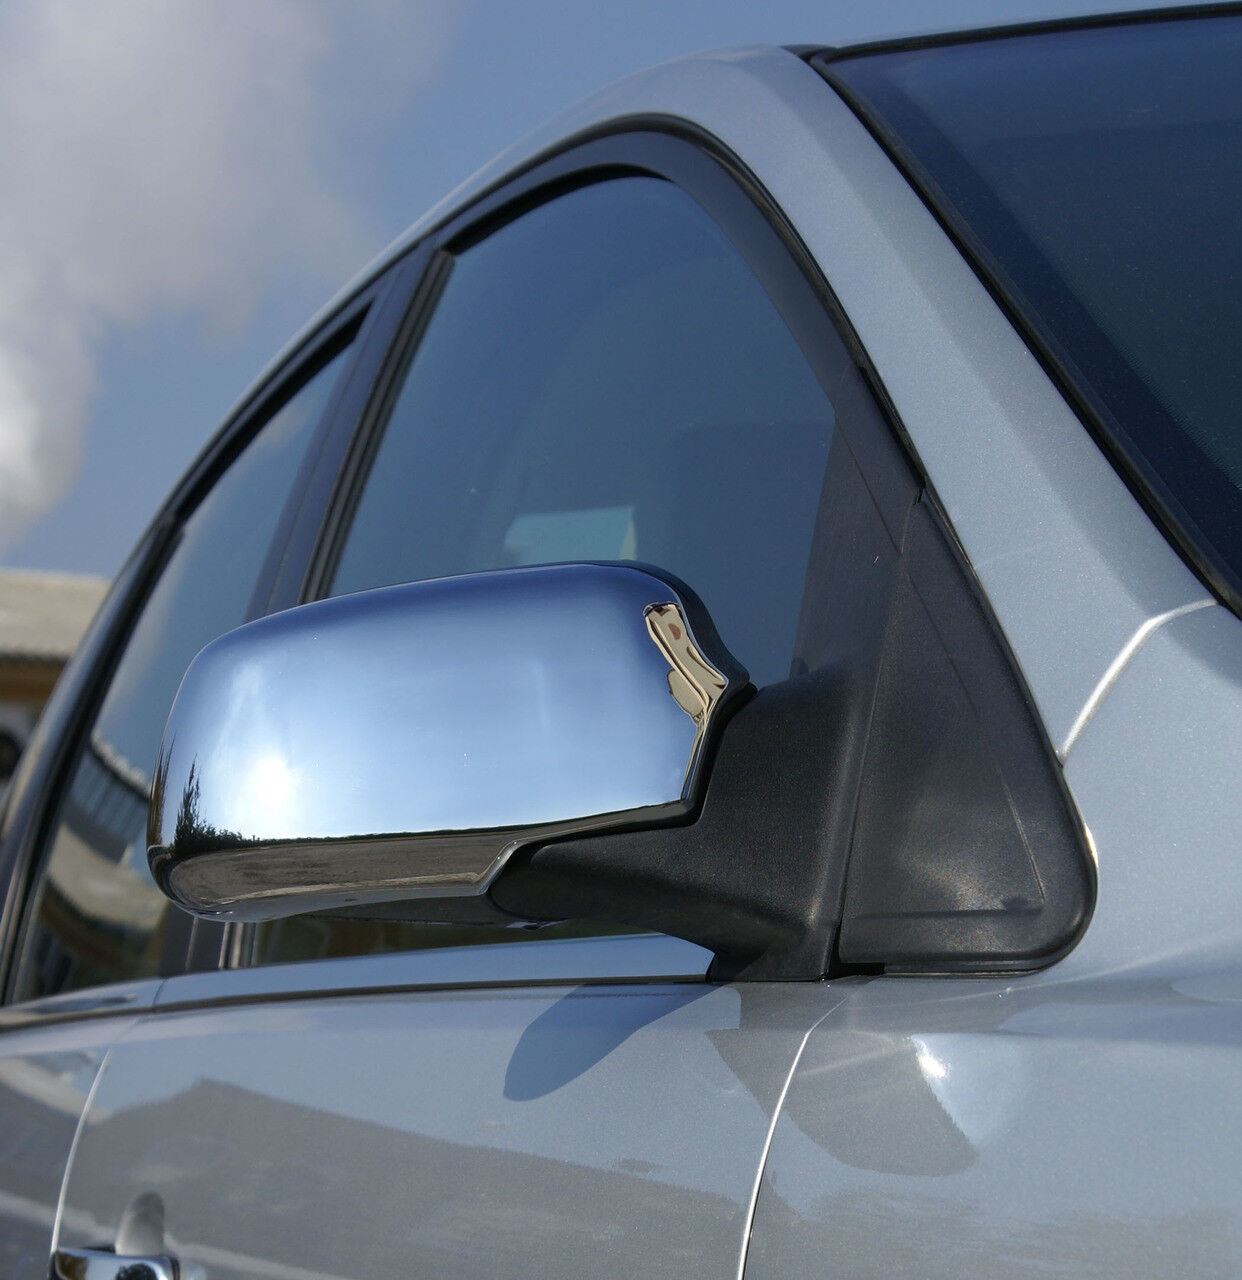 FORD TRANSIT CONNECT 2002-09 CHROME WING MIRROR COVERS TRIM SET OF 2